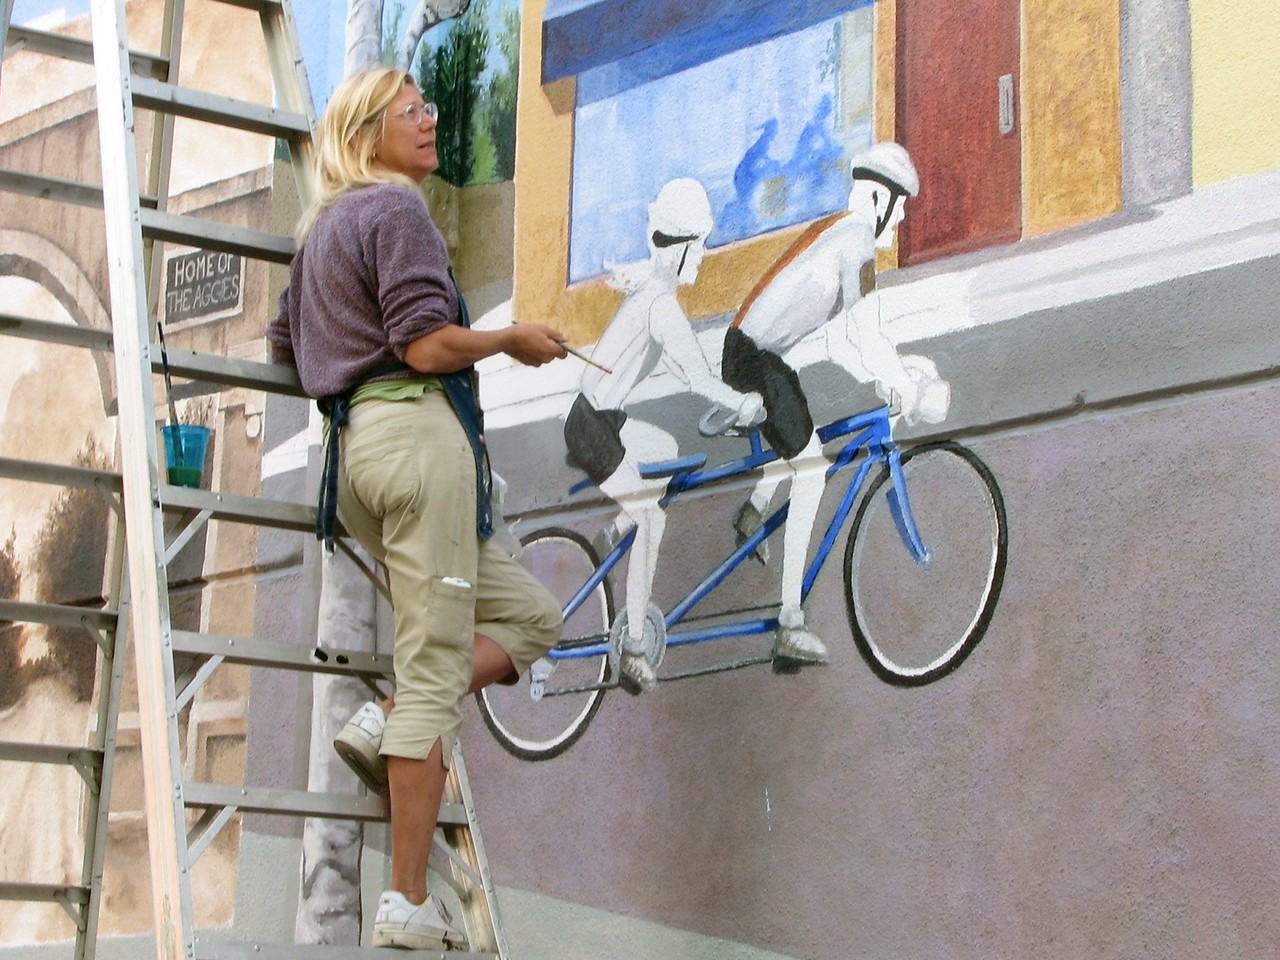 'Bike Fun' Mural in the works at 3rd & F Streets